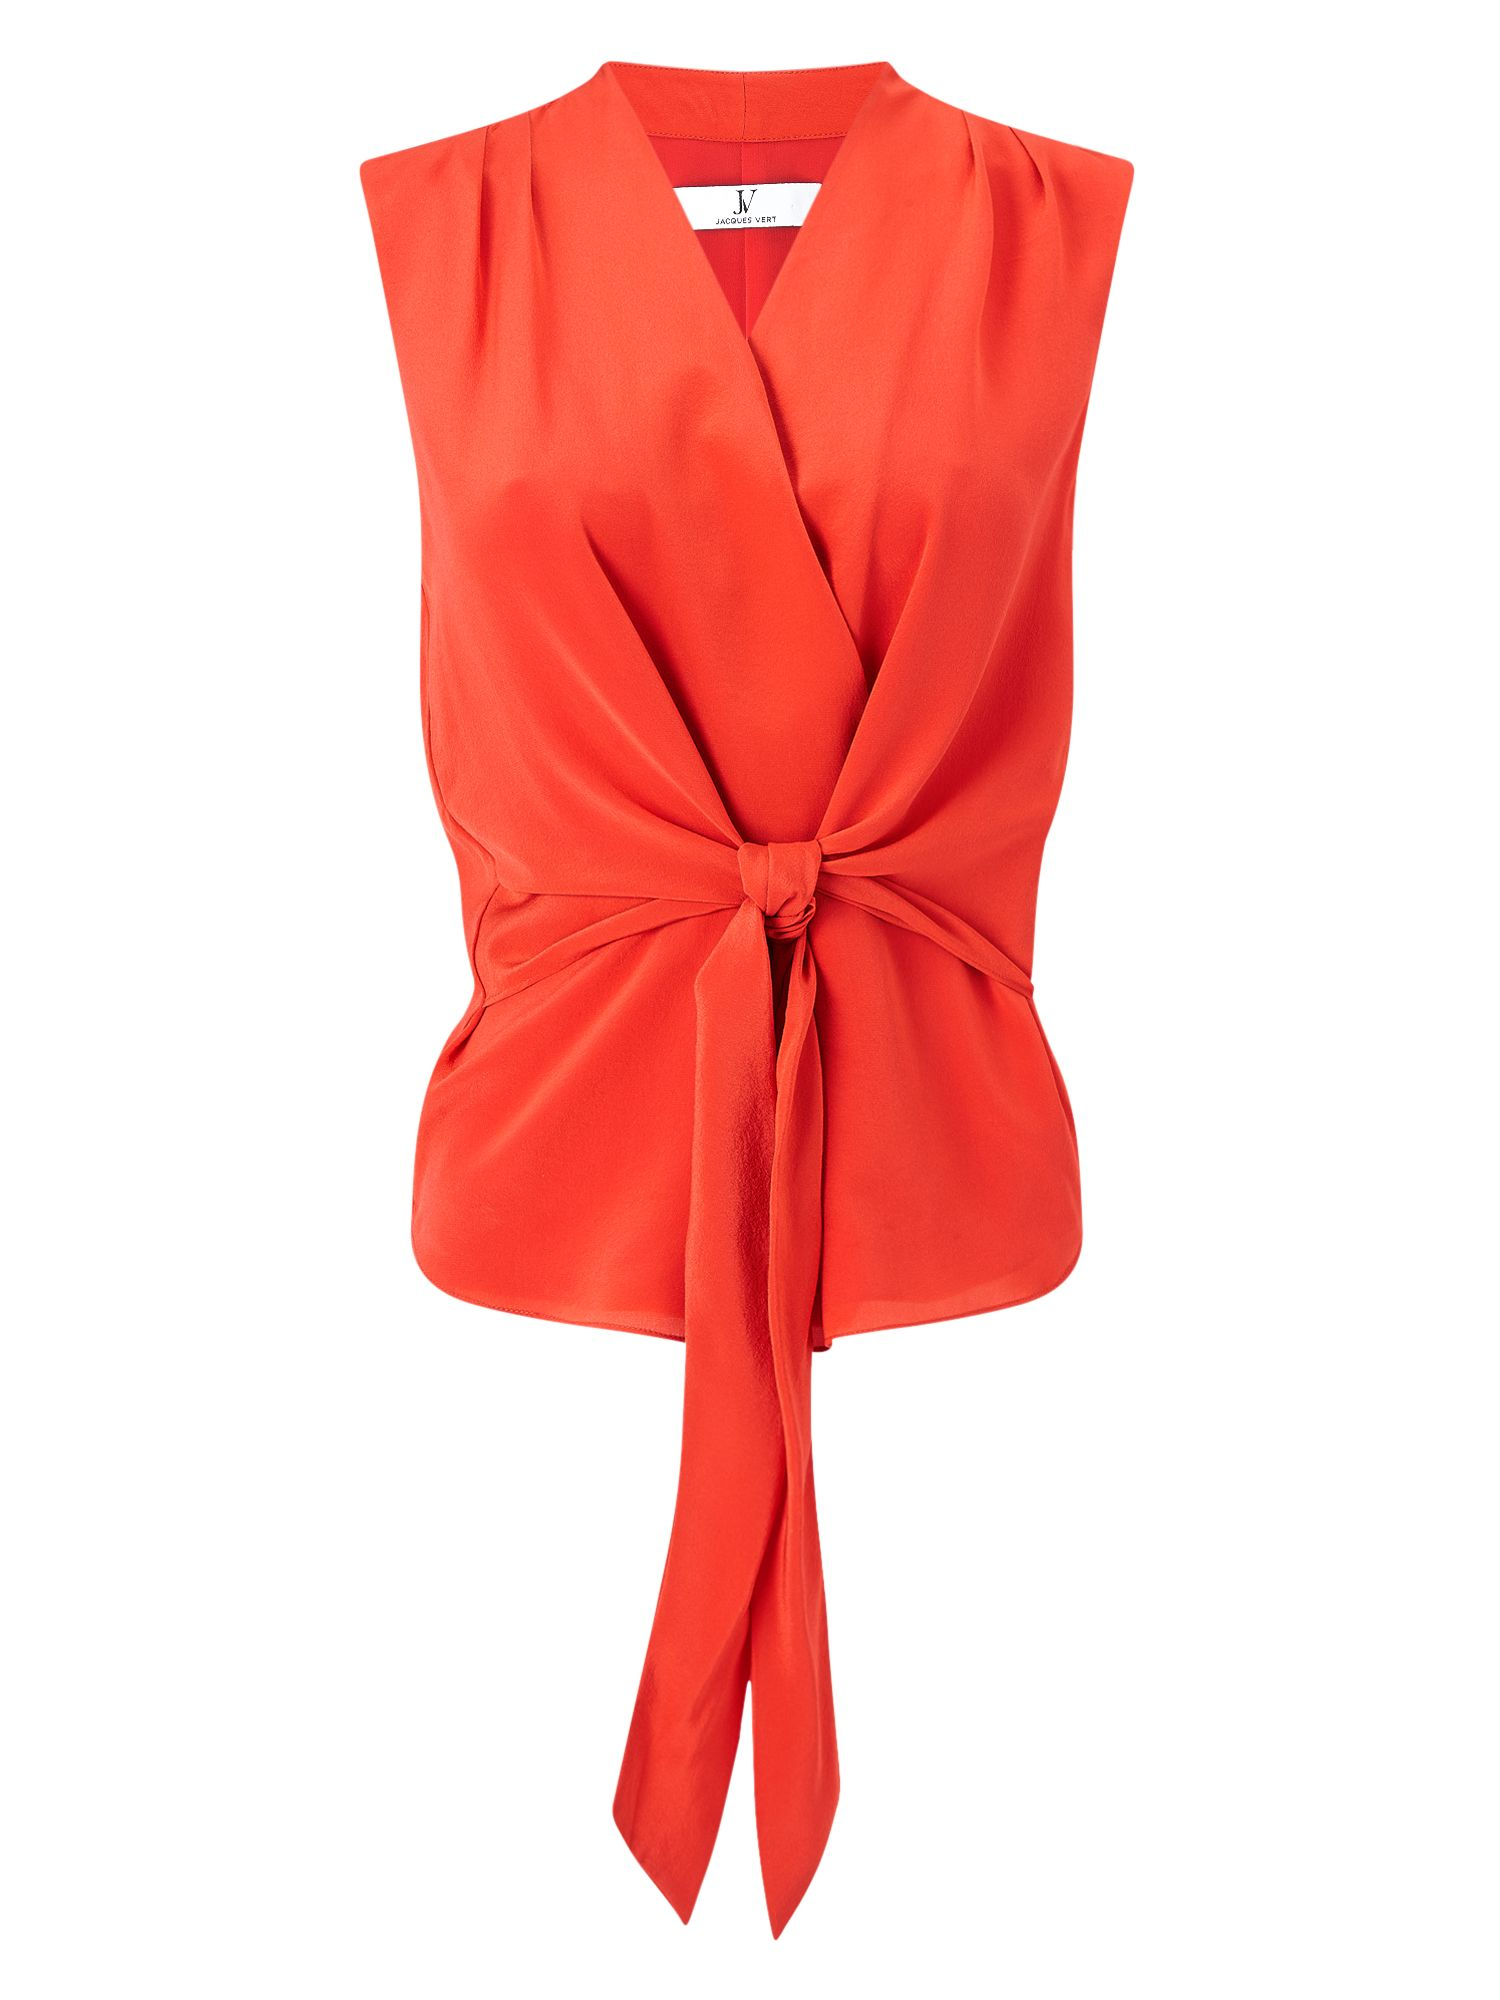 Jacques Vert Tie Front Sleeveless Top, Orange